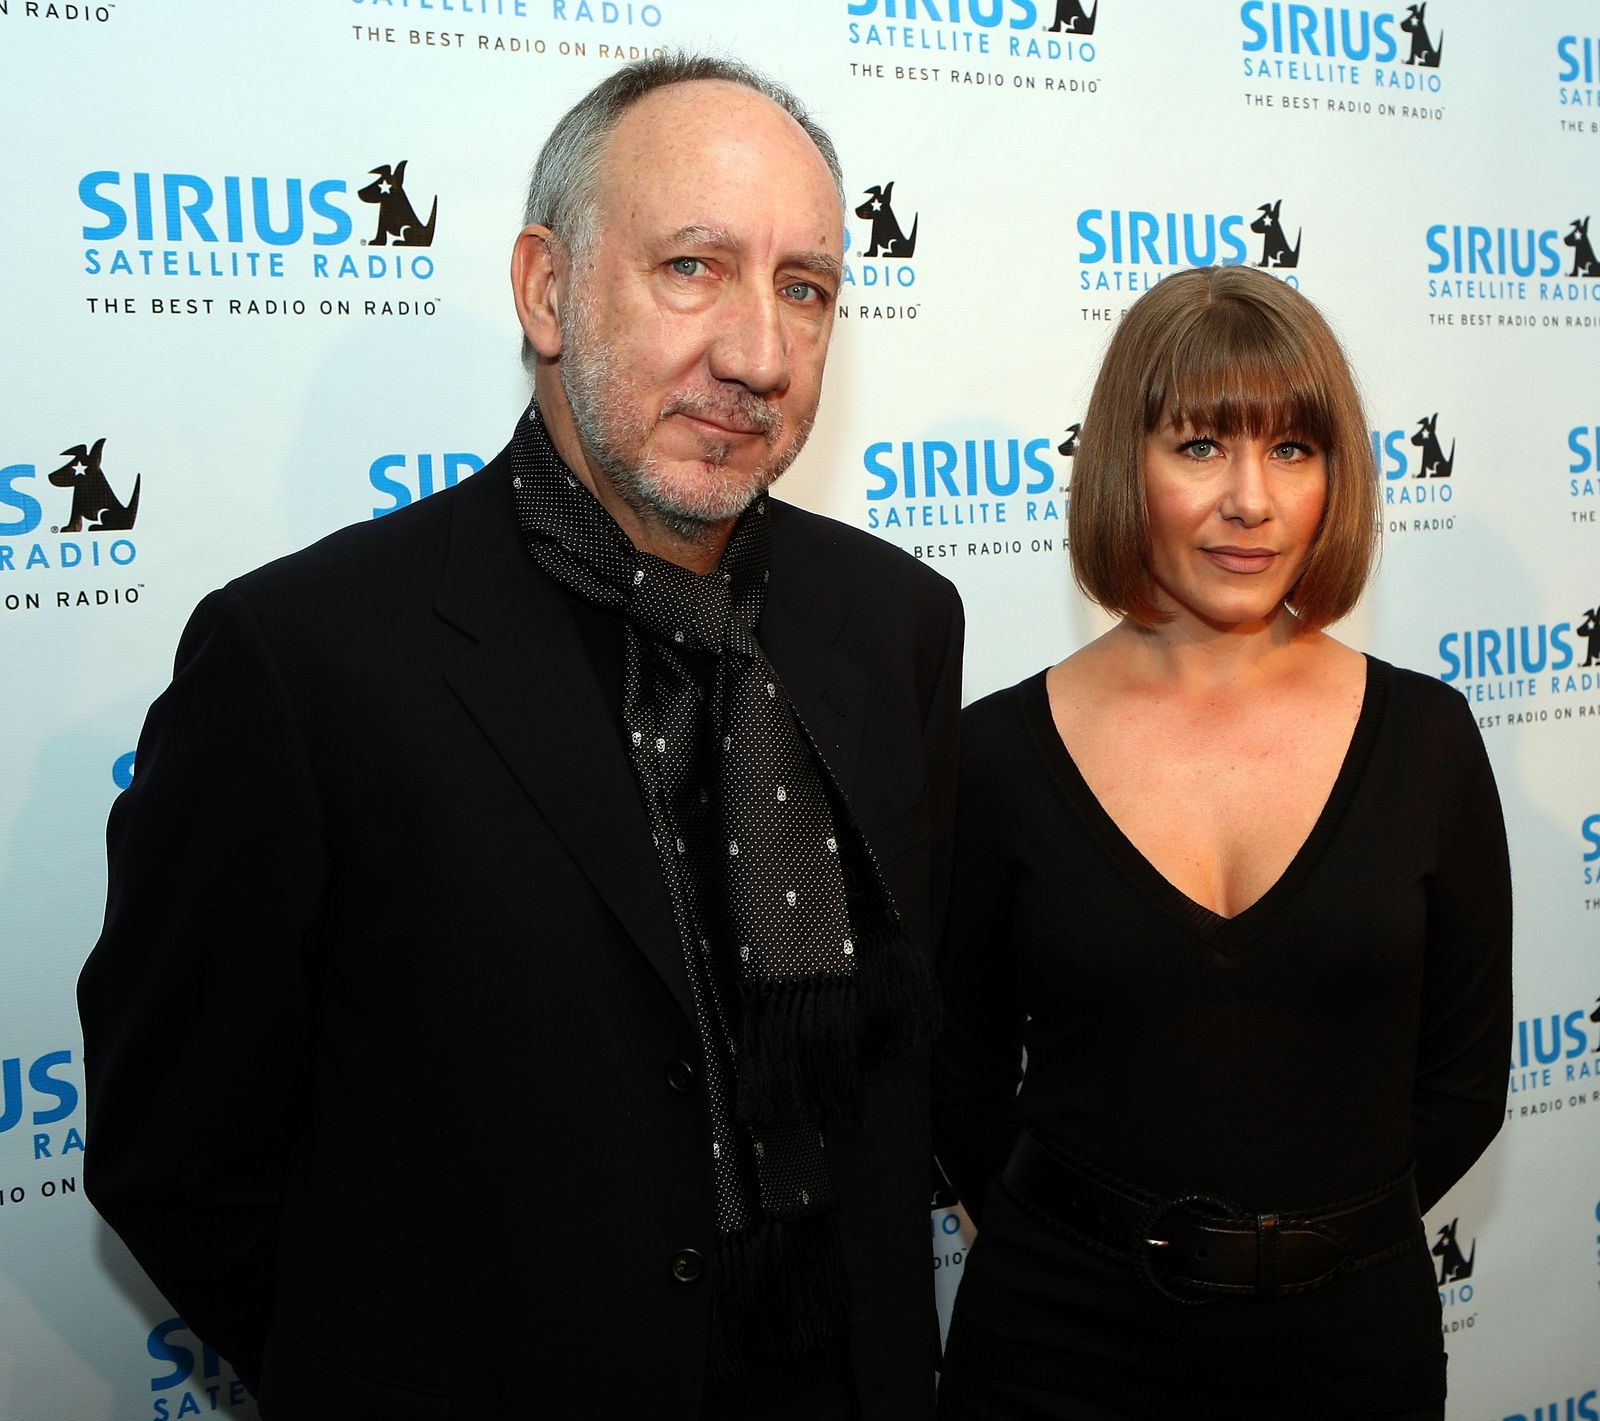 Pete Townshend - The Who Makes A Special Appearance At Sirius Satellite Radio